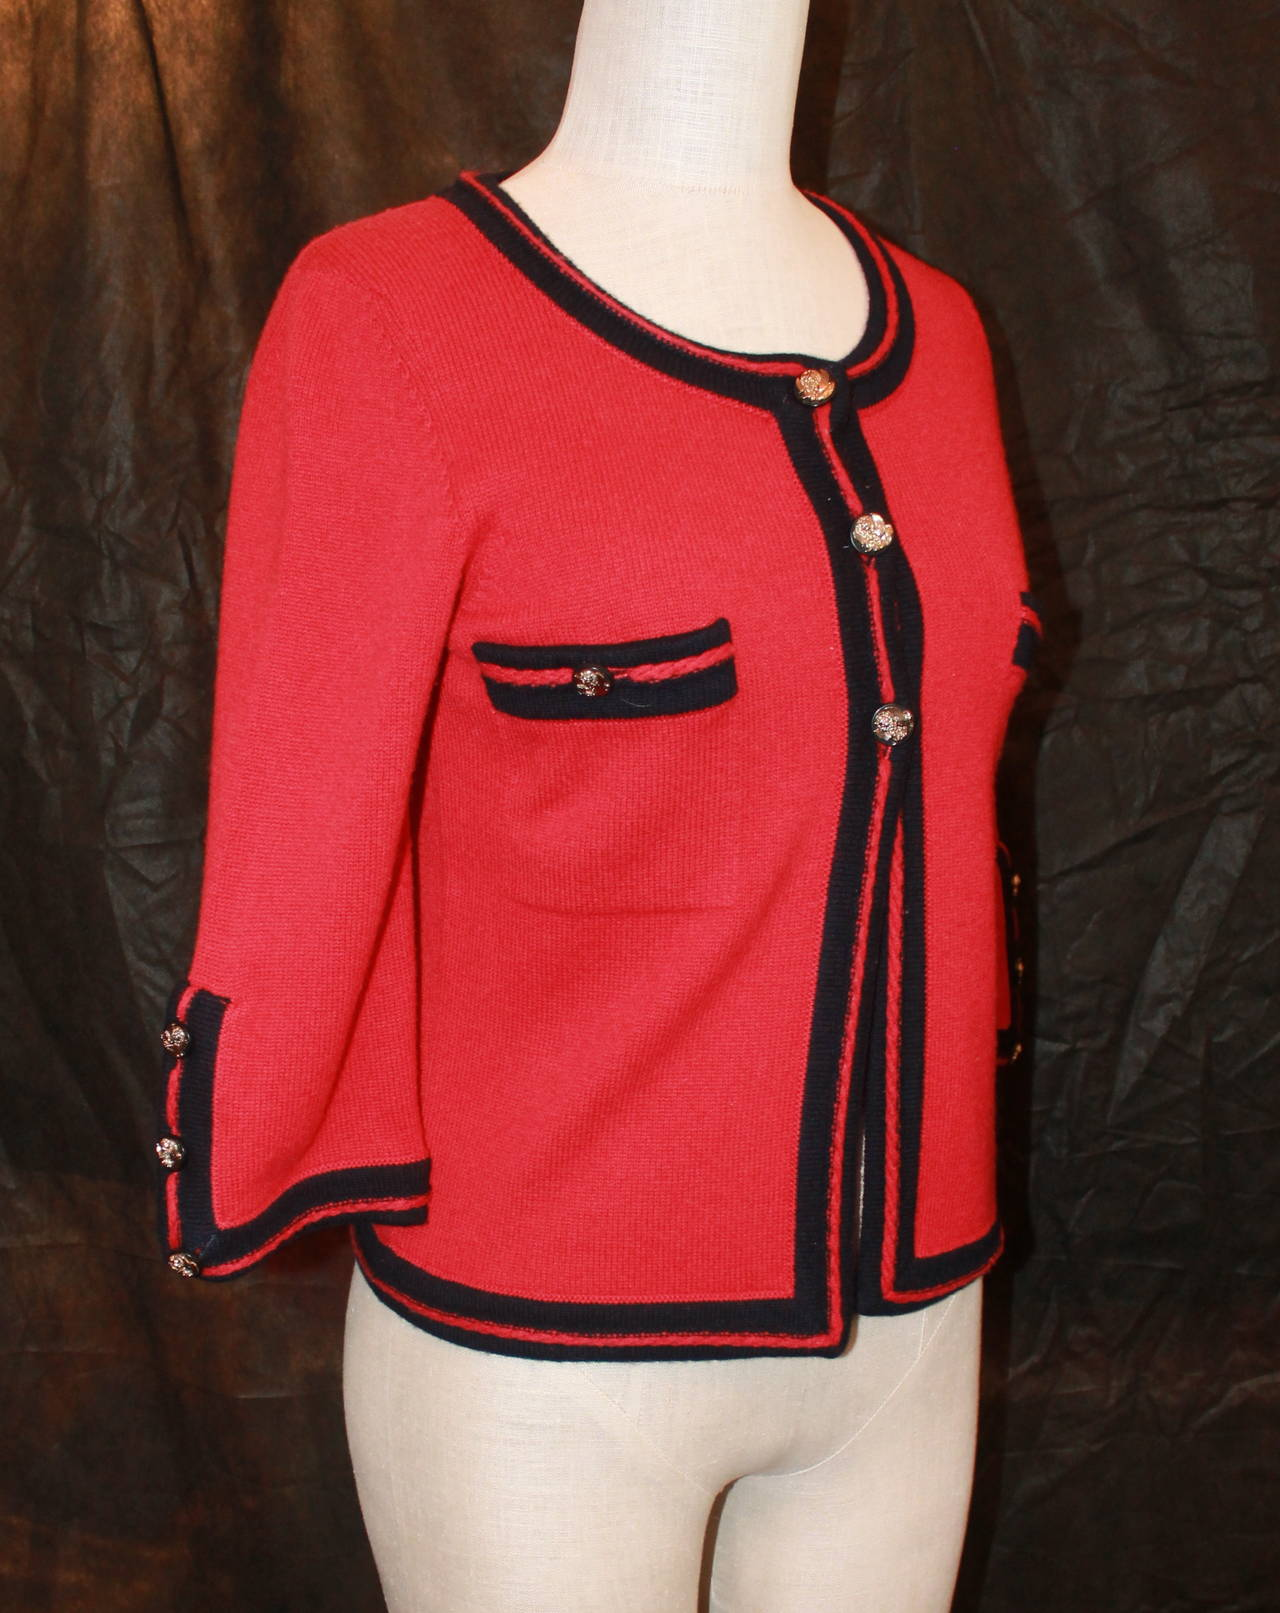 Chanel 1980s Red & Navy Cashmere Sweater 2